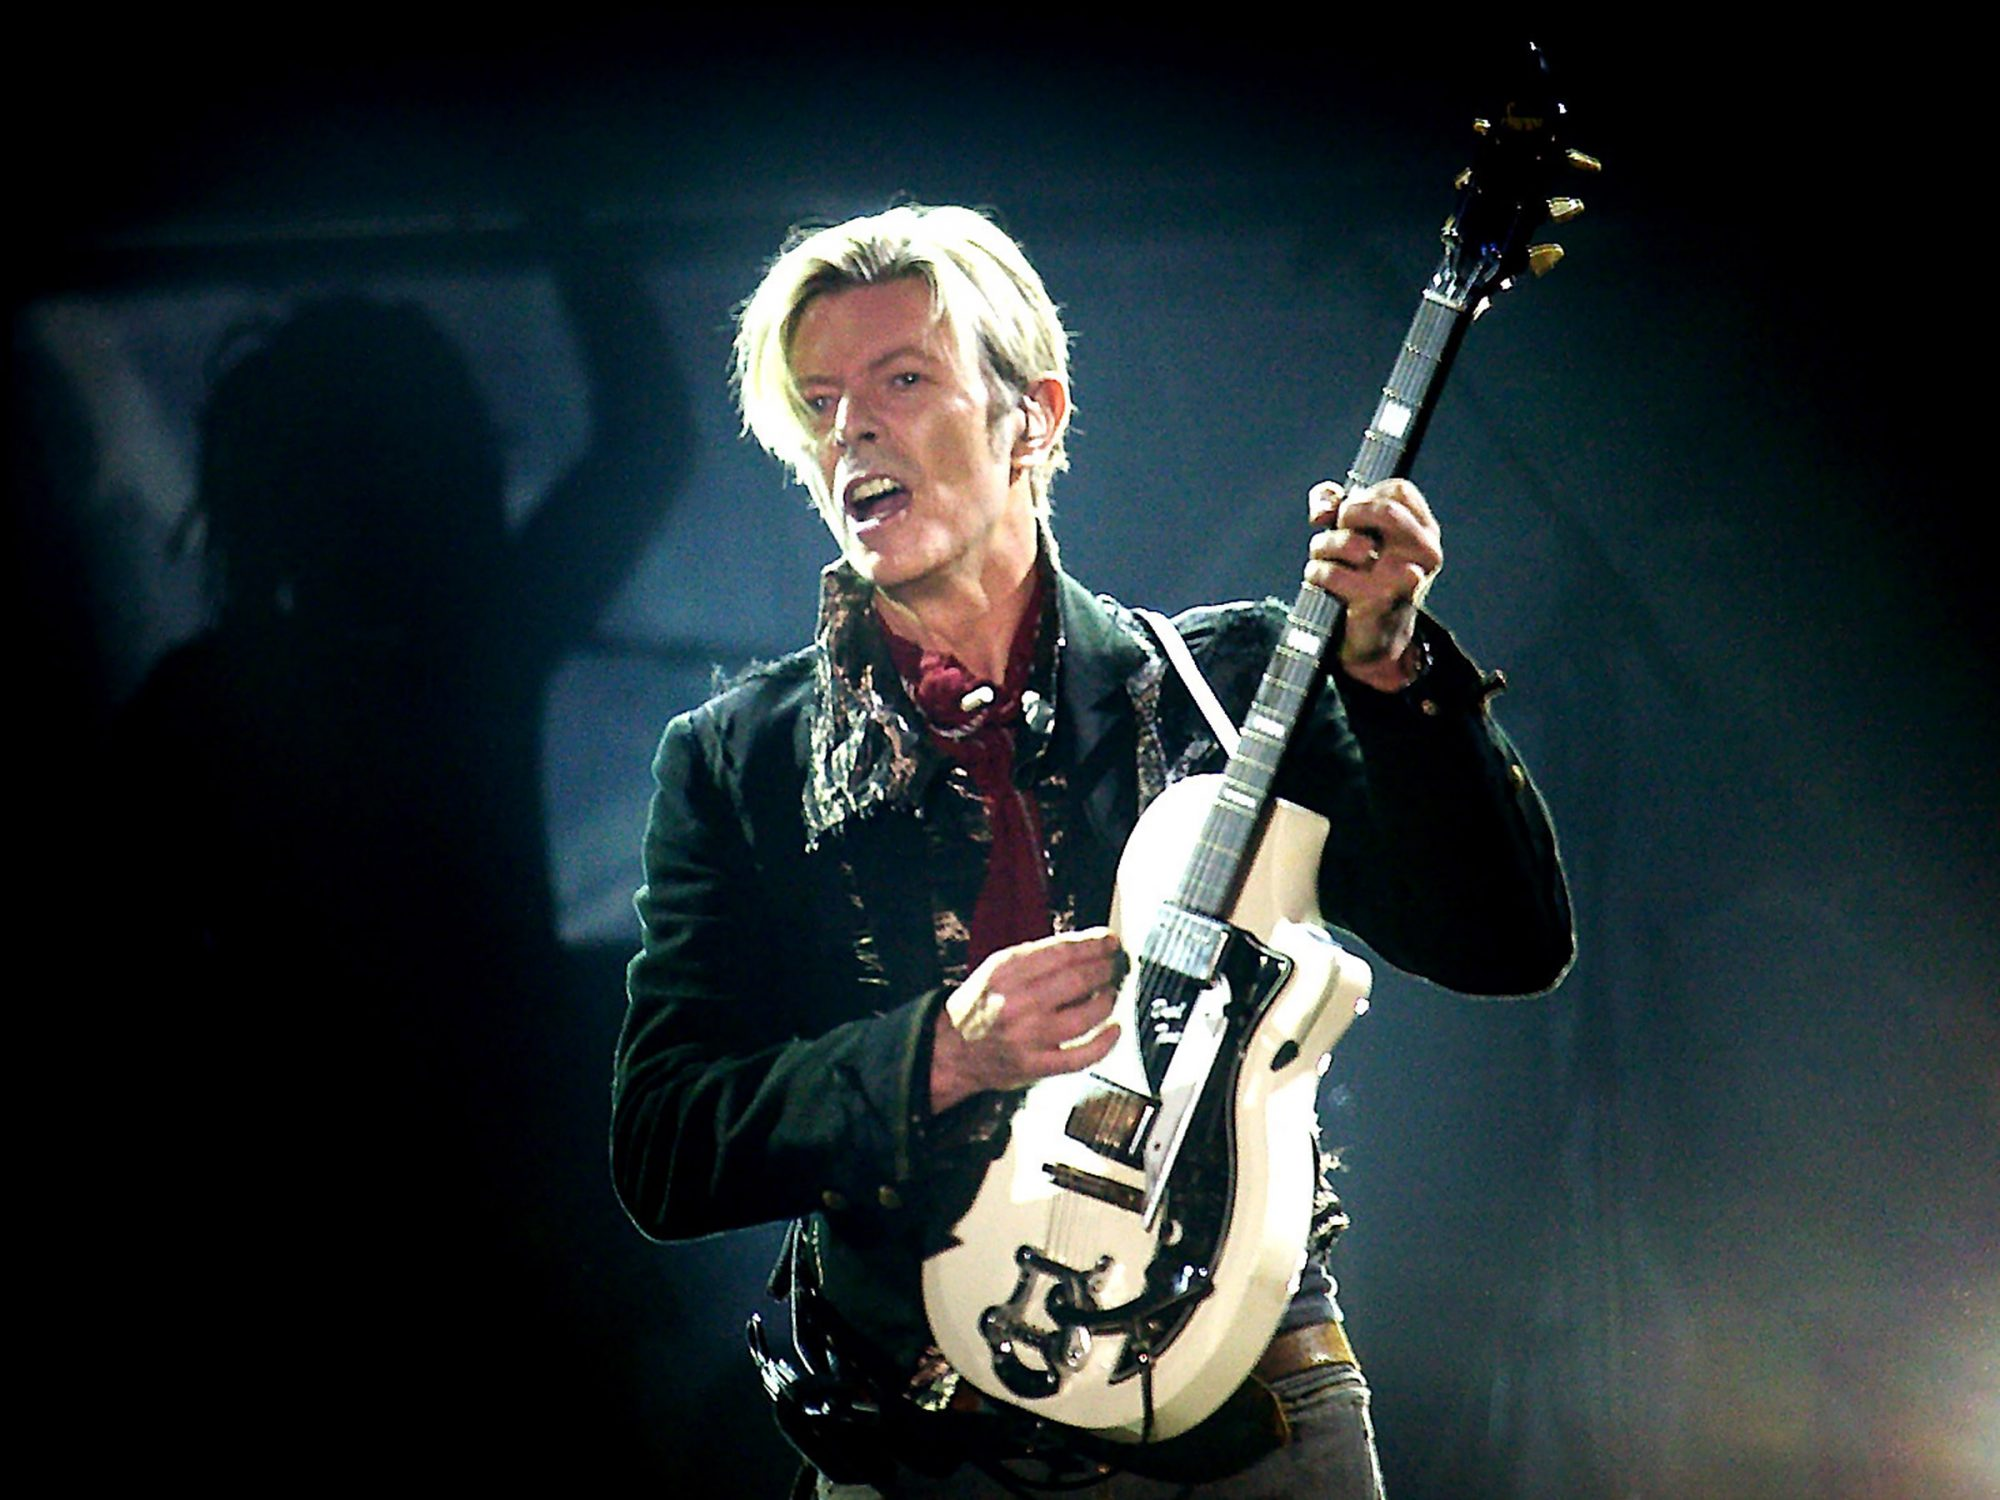 Rock legend David Bowie performs on stag